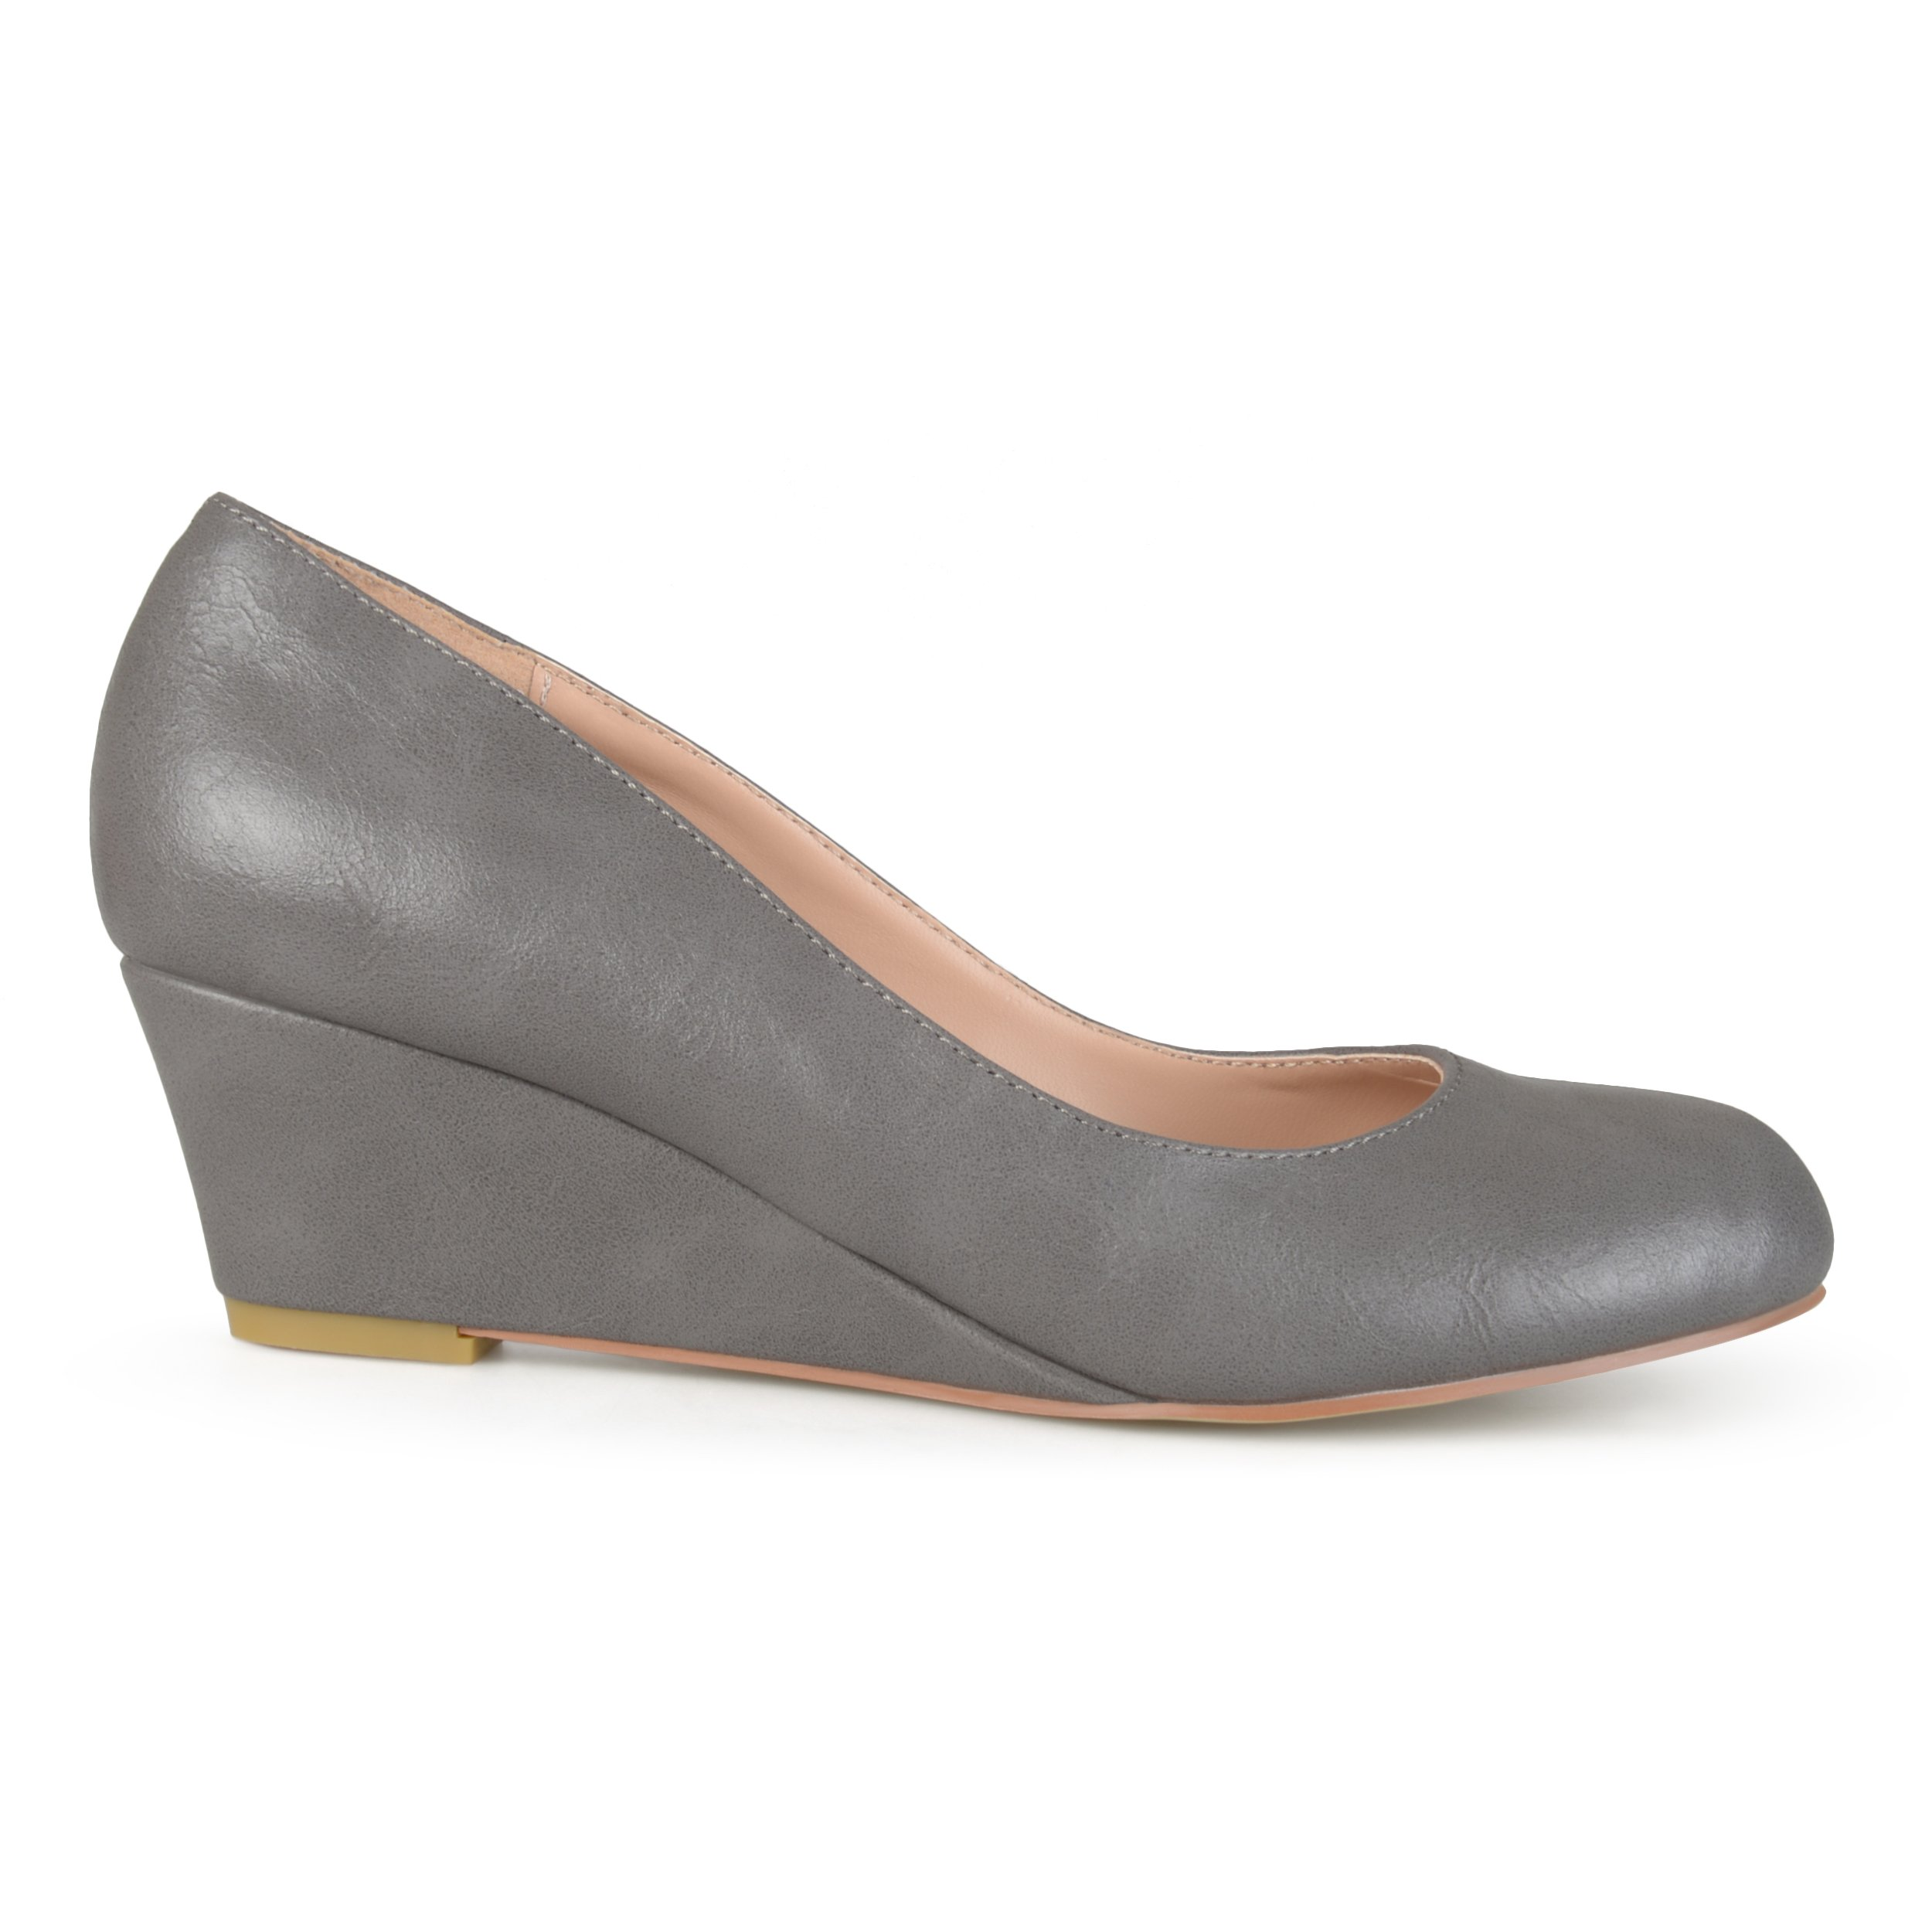 Brinley Co. Womens Round Toe Classic Wedges Grey, 6 Wide US